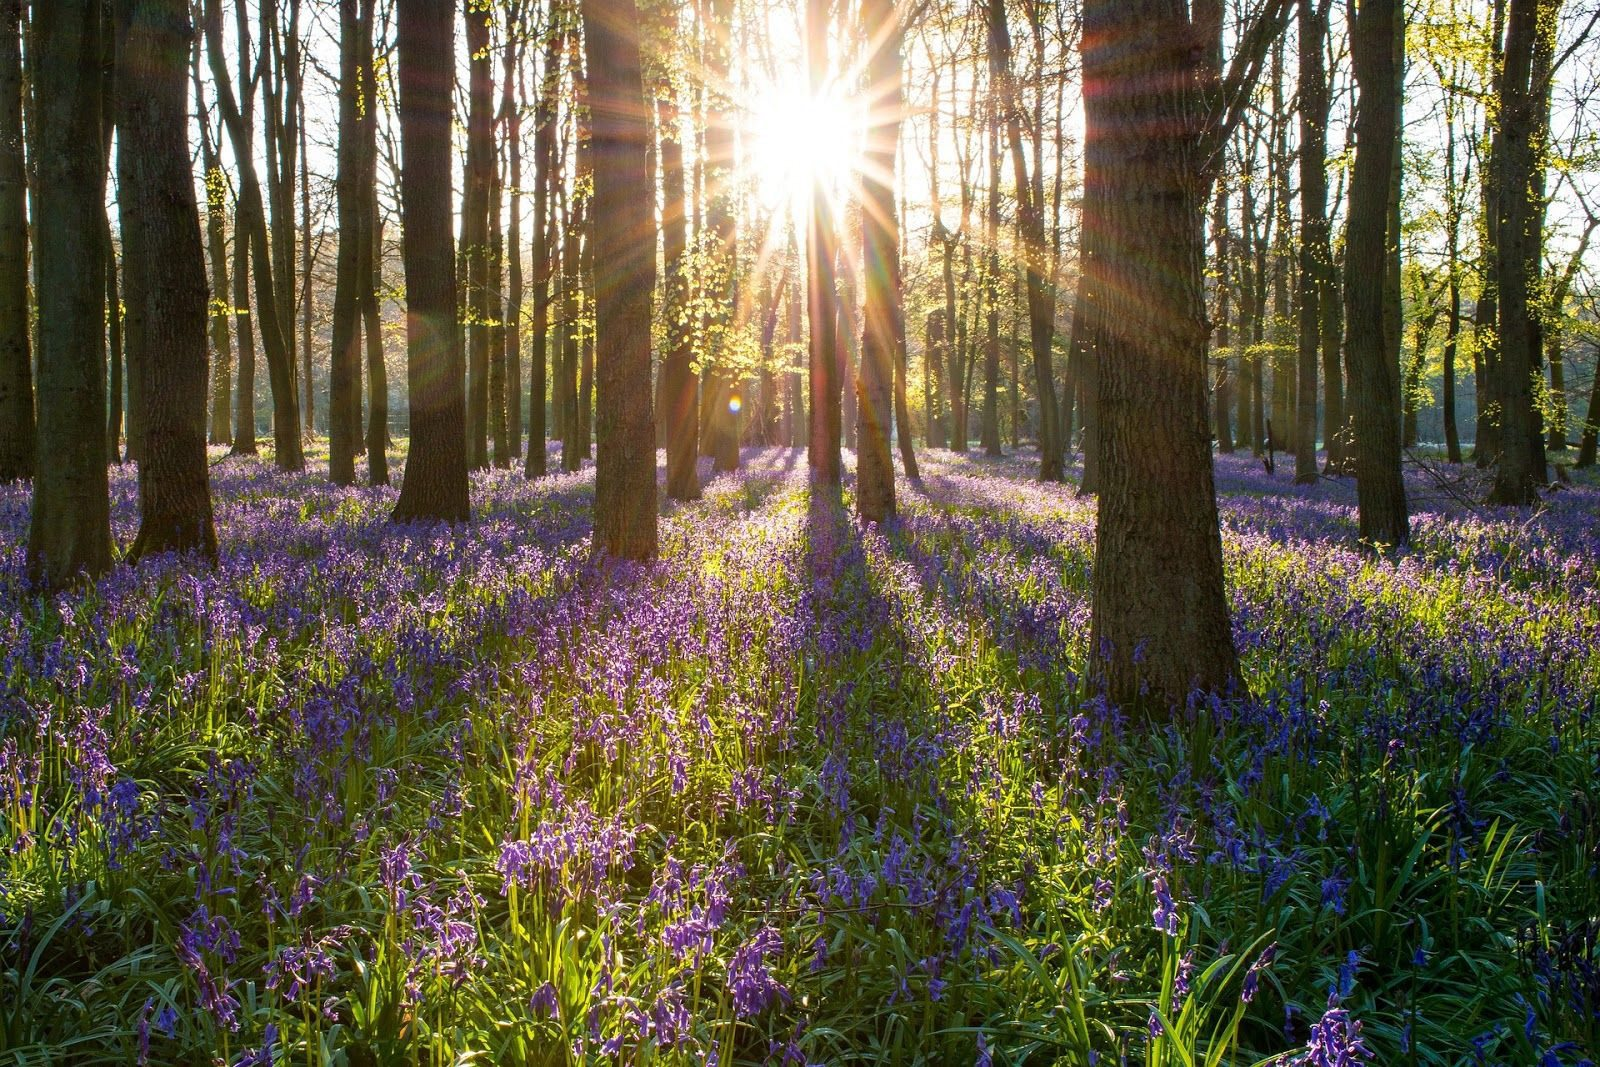 St Ives Forest with floor covered in violet flowers